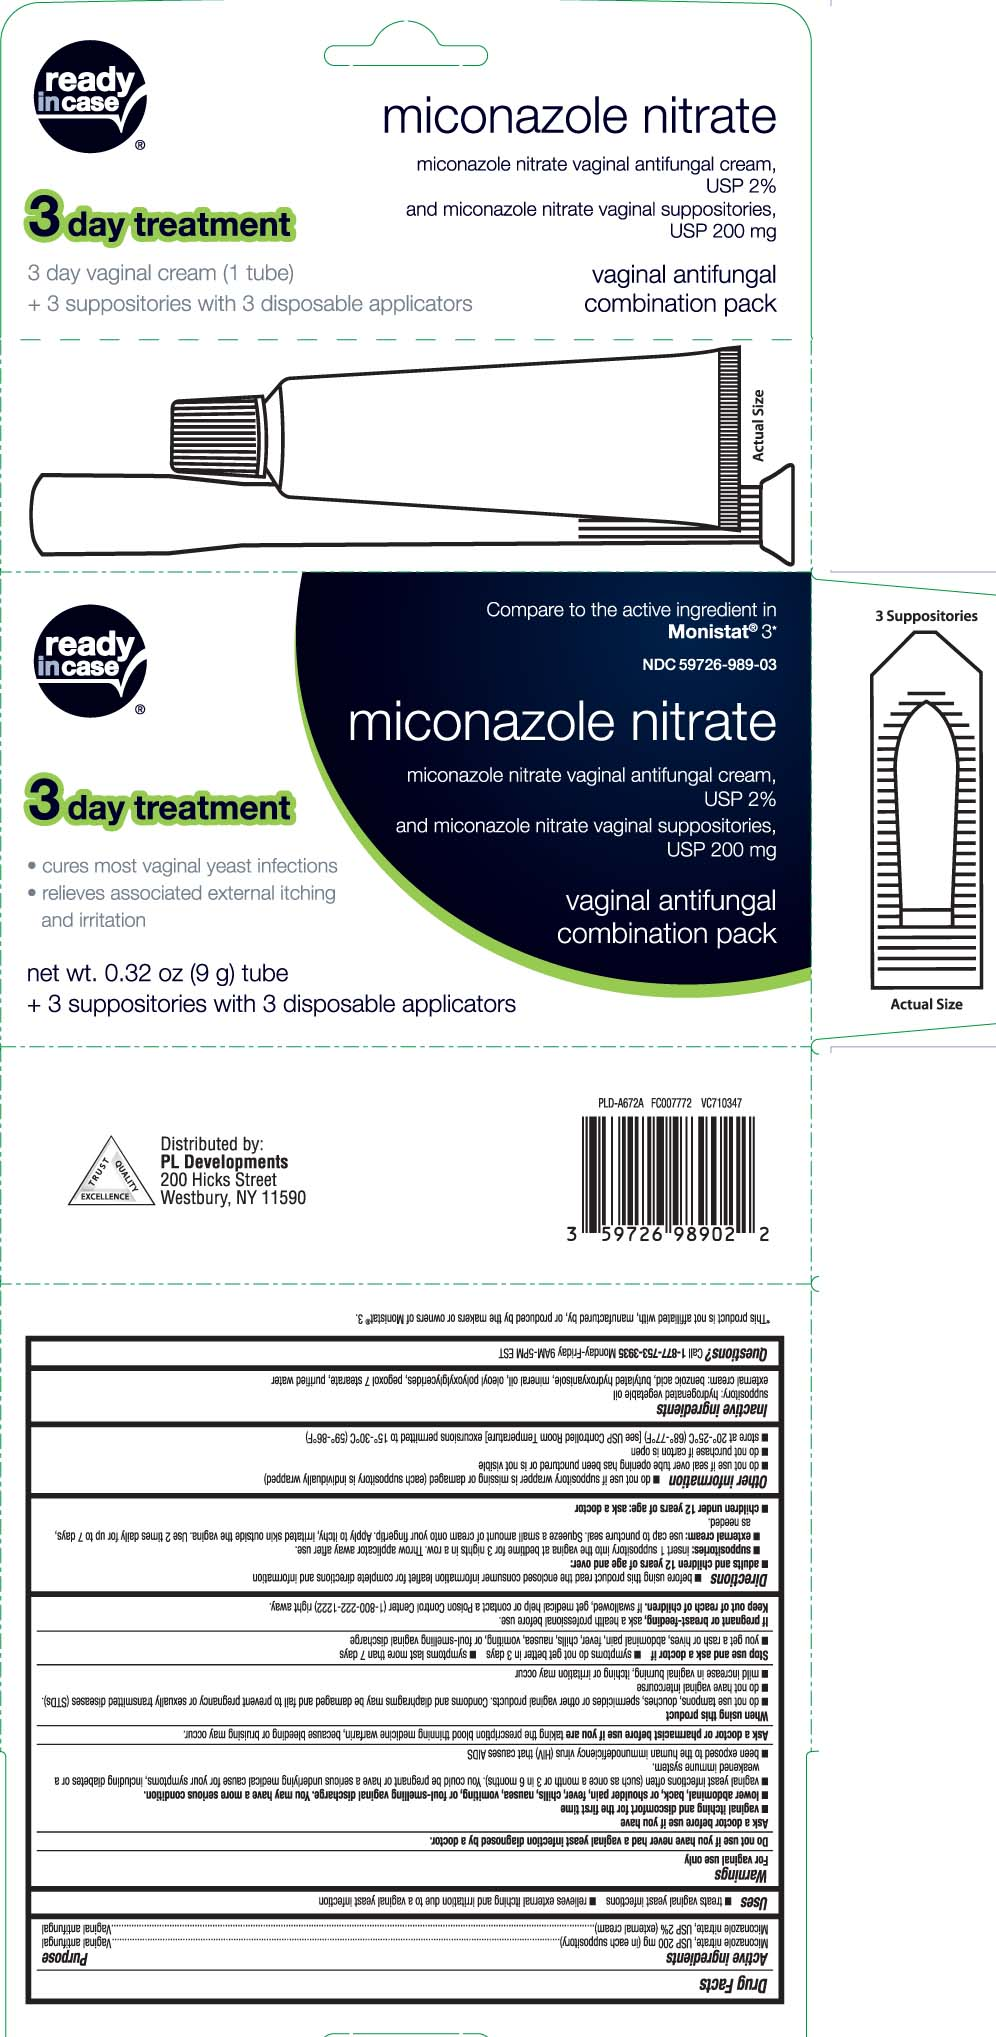 Miconazole nitrate, USP 200 mg (in each suppository Miconazole nitrate, USP 2% (external cream)